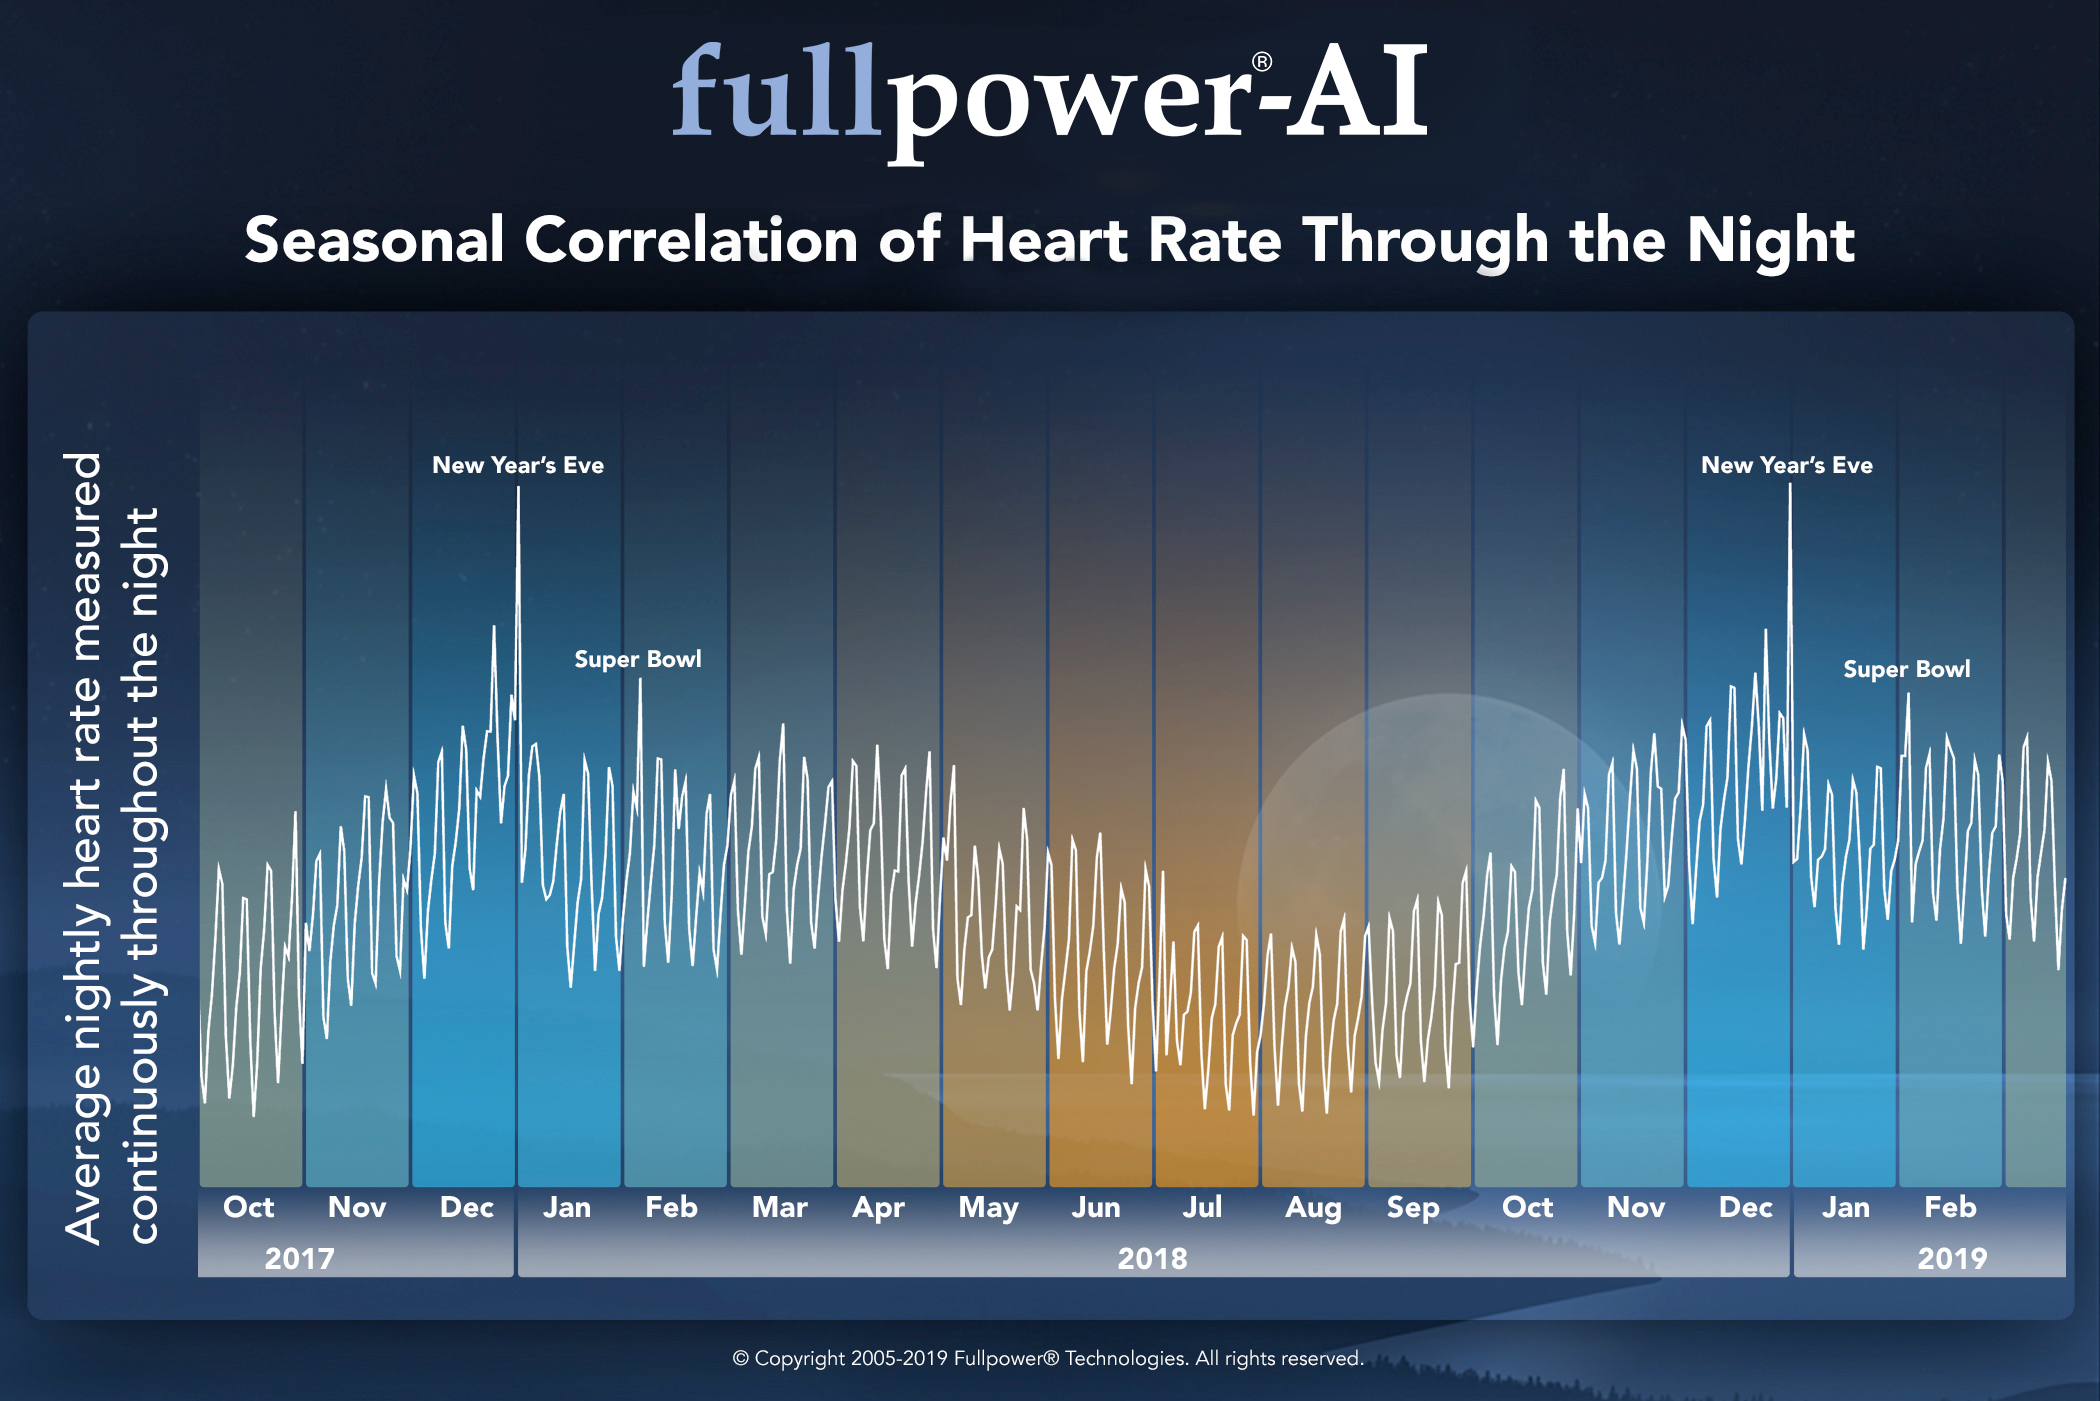 seasonal-correlation-of-heart-rate-through-the-night